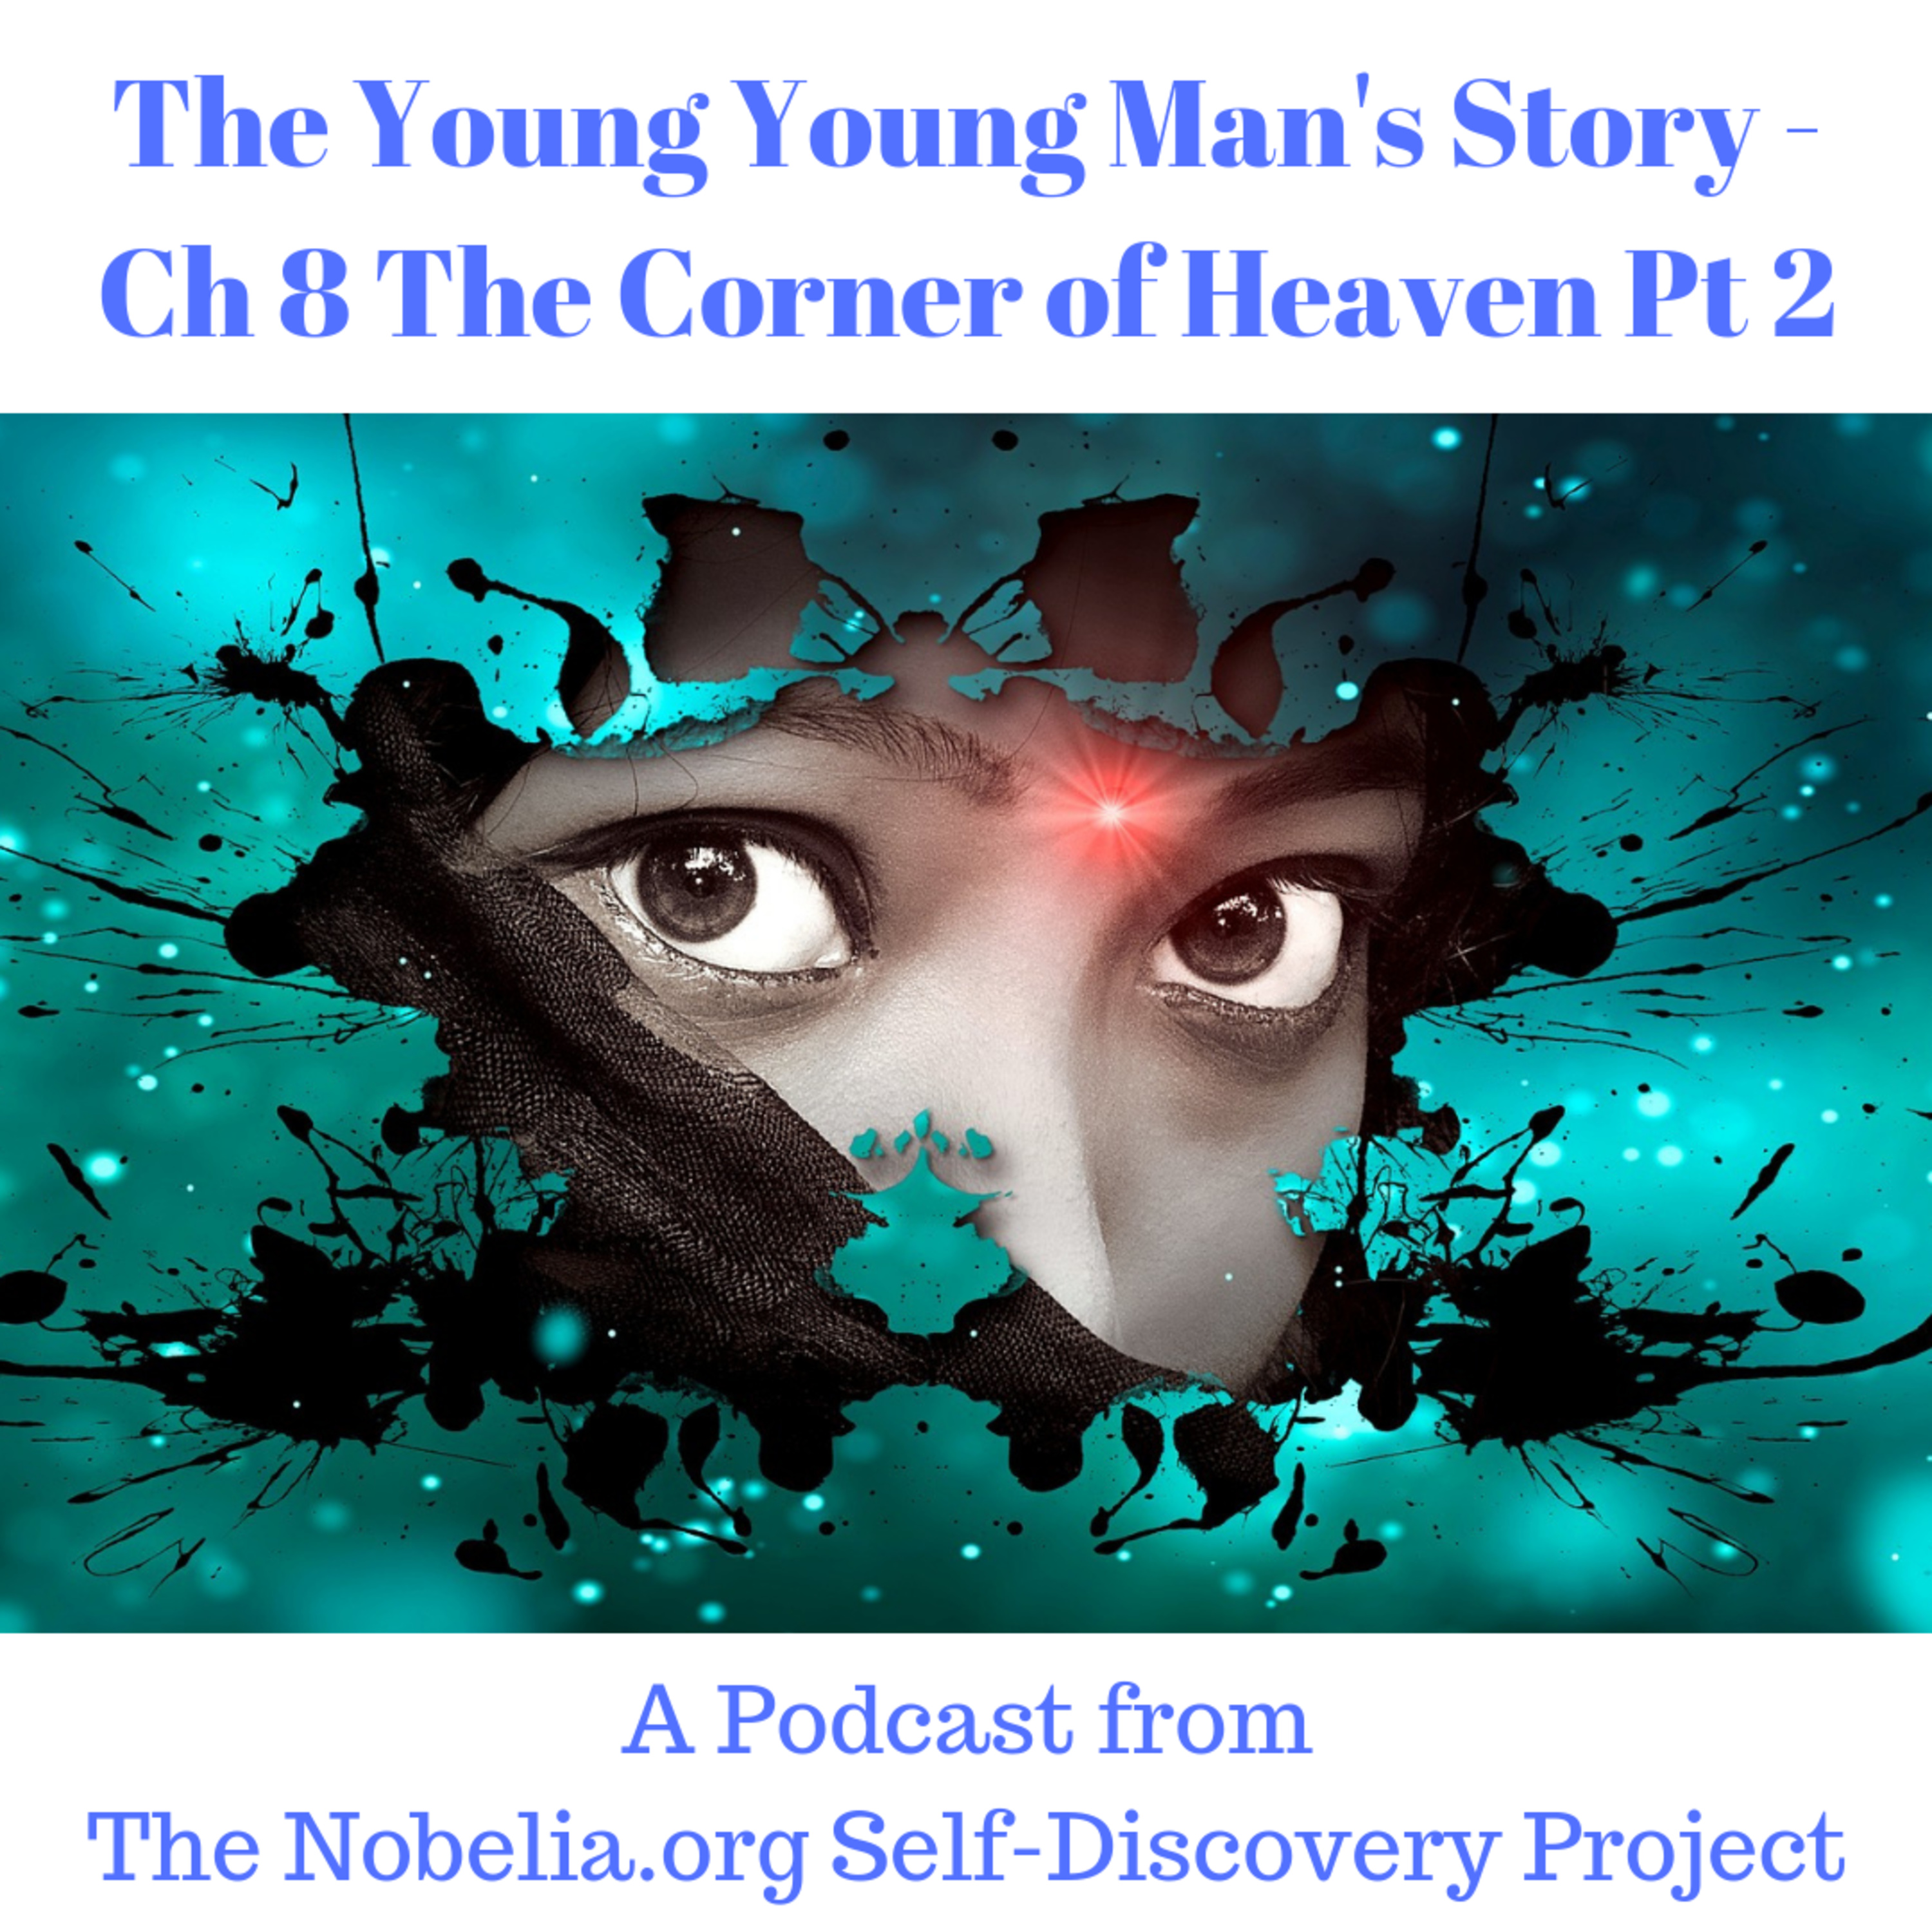 The Young Young Man's Story - Ch 8 The Corner of Heaven Part 2